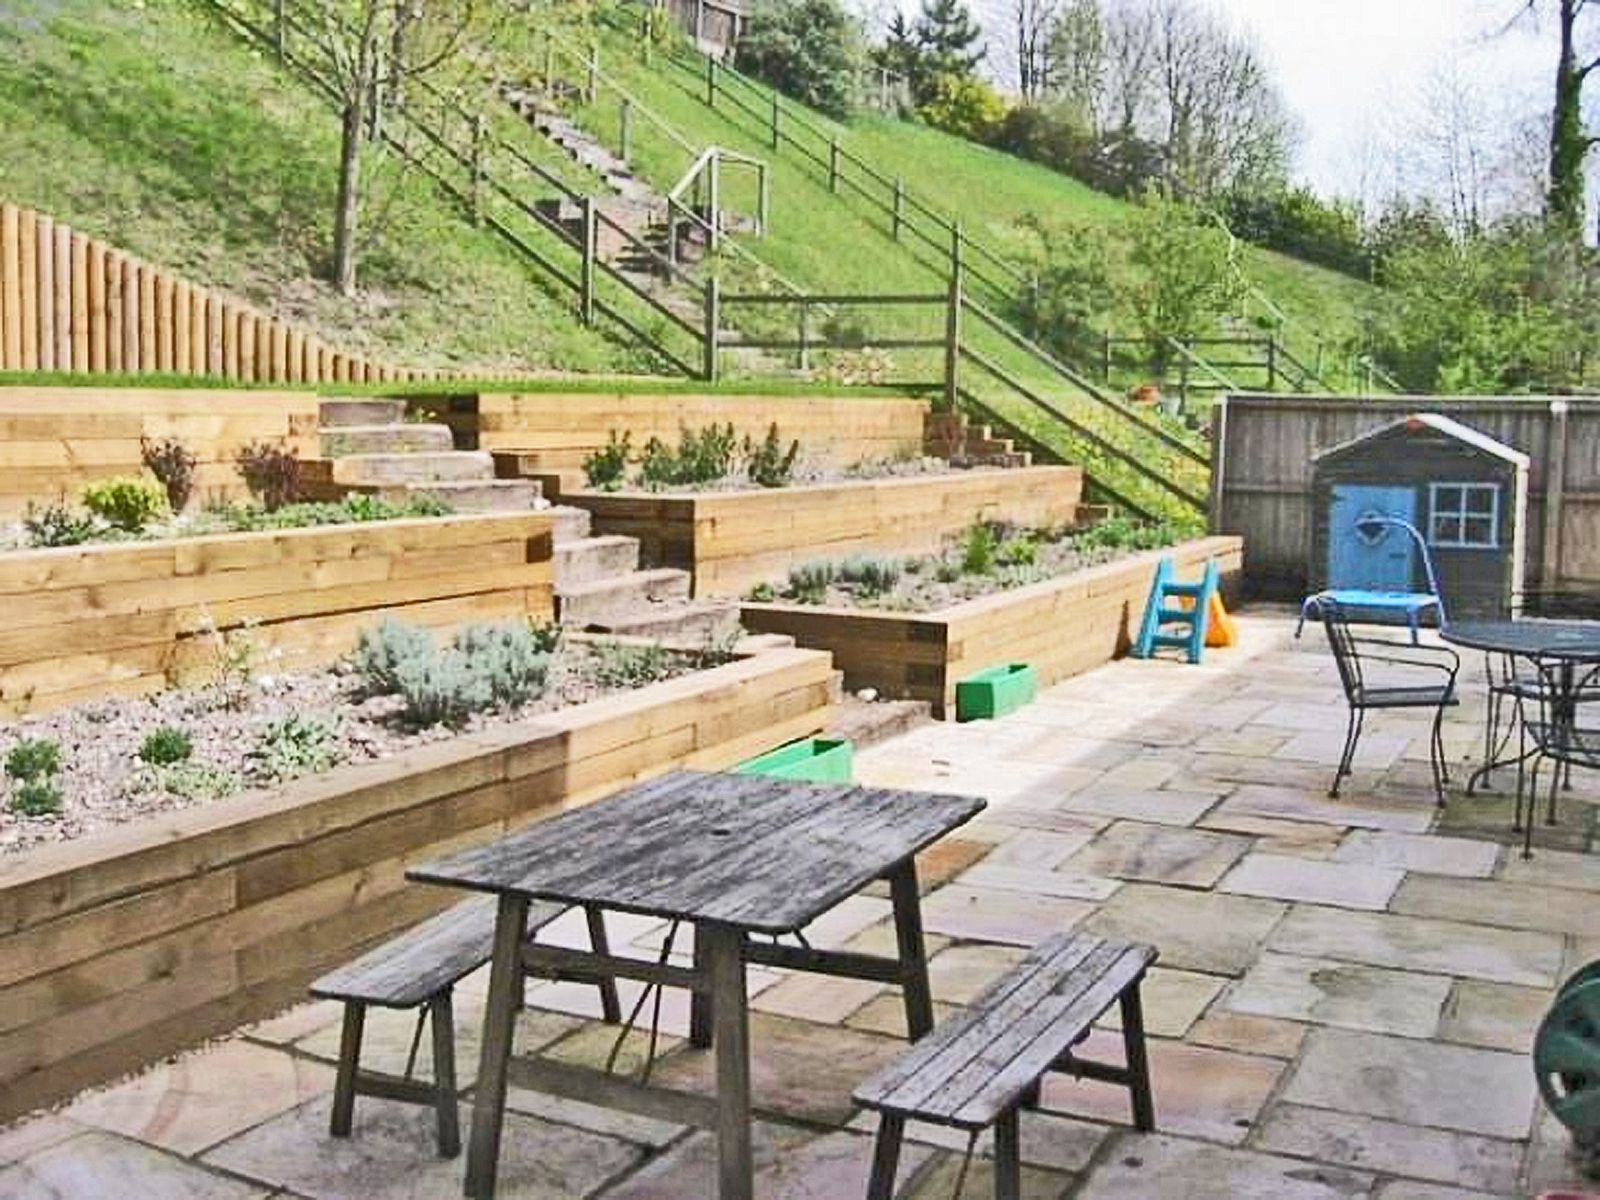 13 Hillside Landscaping Ideas To Maximize Your Yard in Terraced Backyard Landscaping Ideas